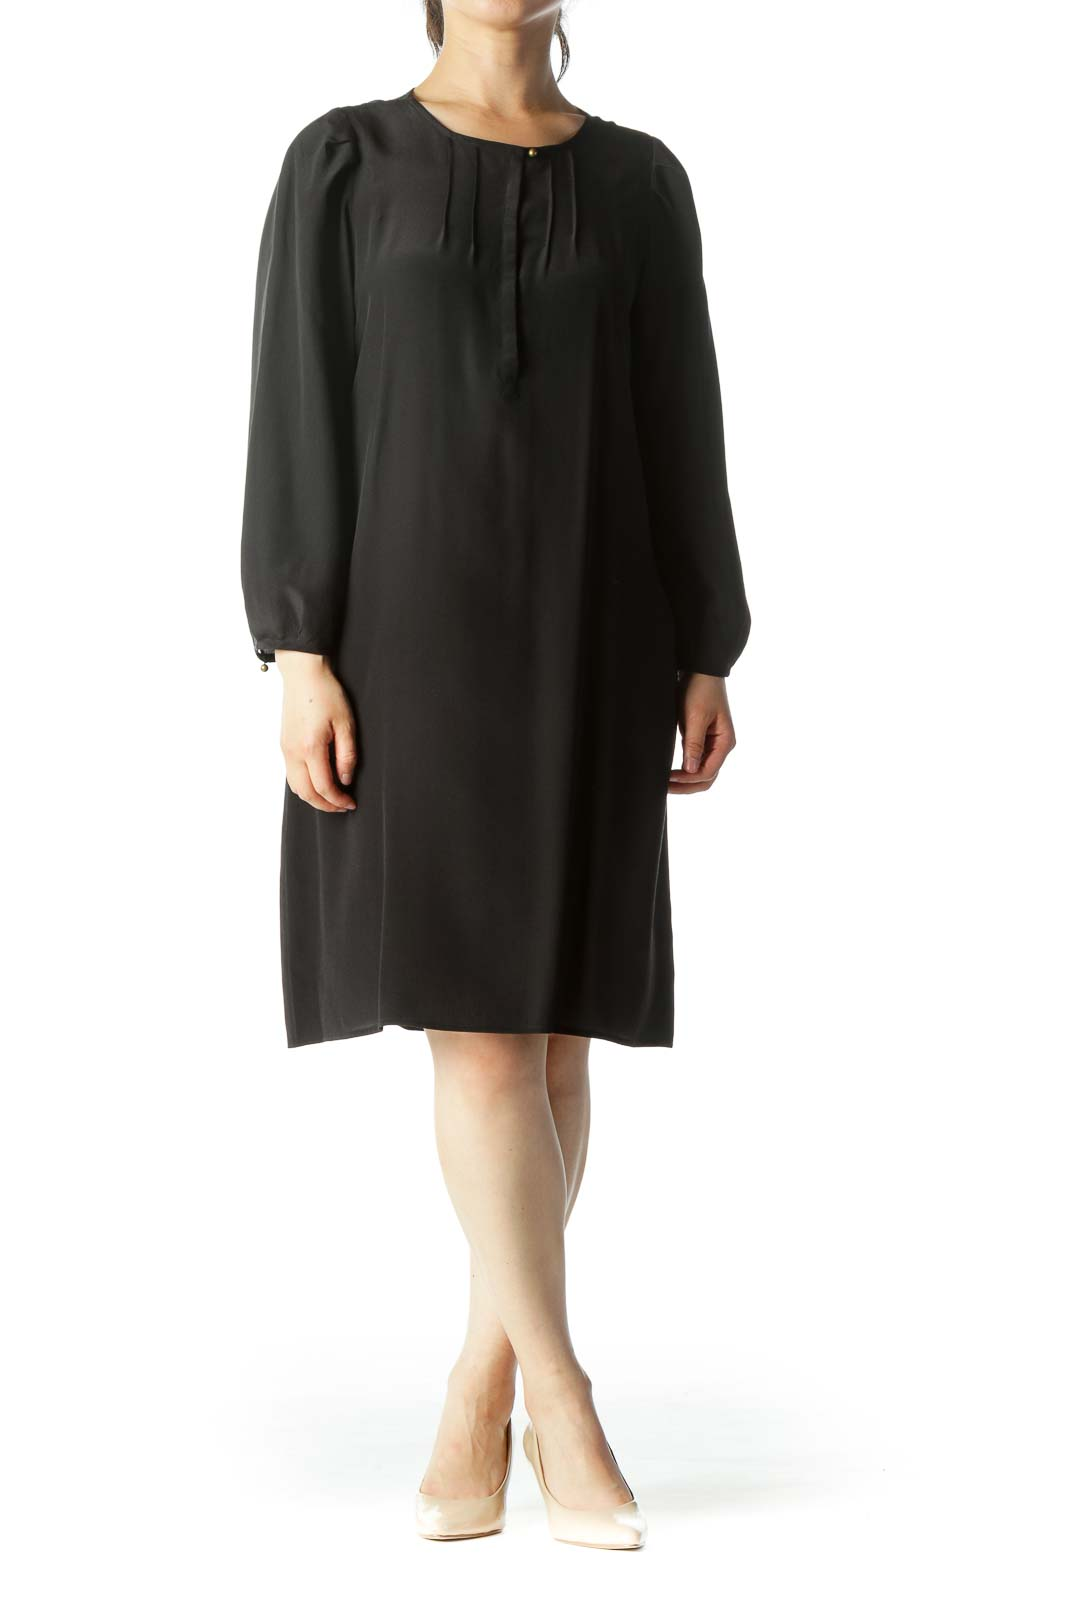 Black 100% Silk Chest-Pleated Buttoned 3/4 Sleeve Peasant Cocktail Dress Front